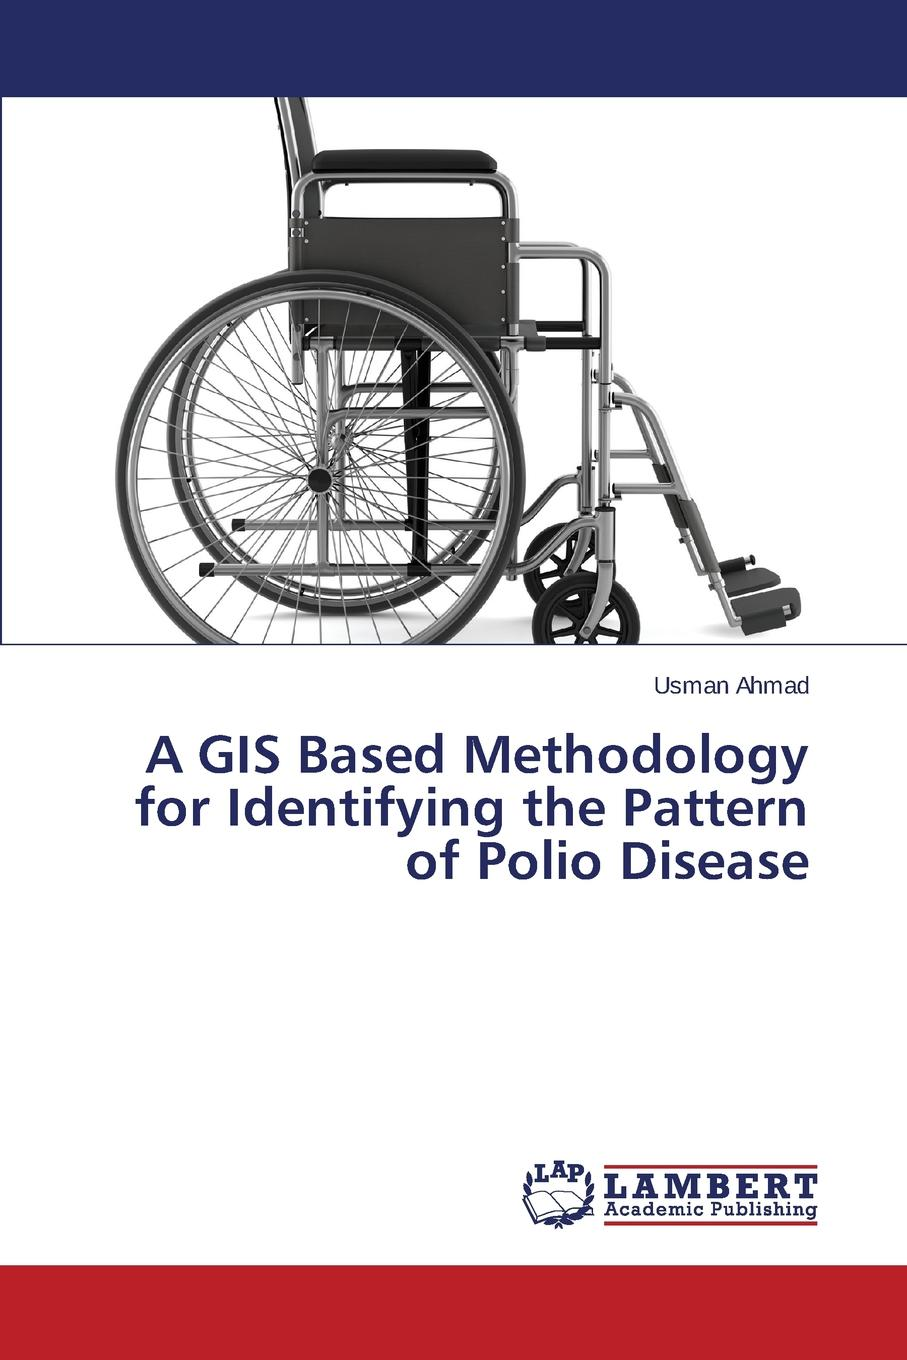 Ahmad Usman A GIS Based Methodology for Identifying the Pattern of Polio Disease spatial data integration